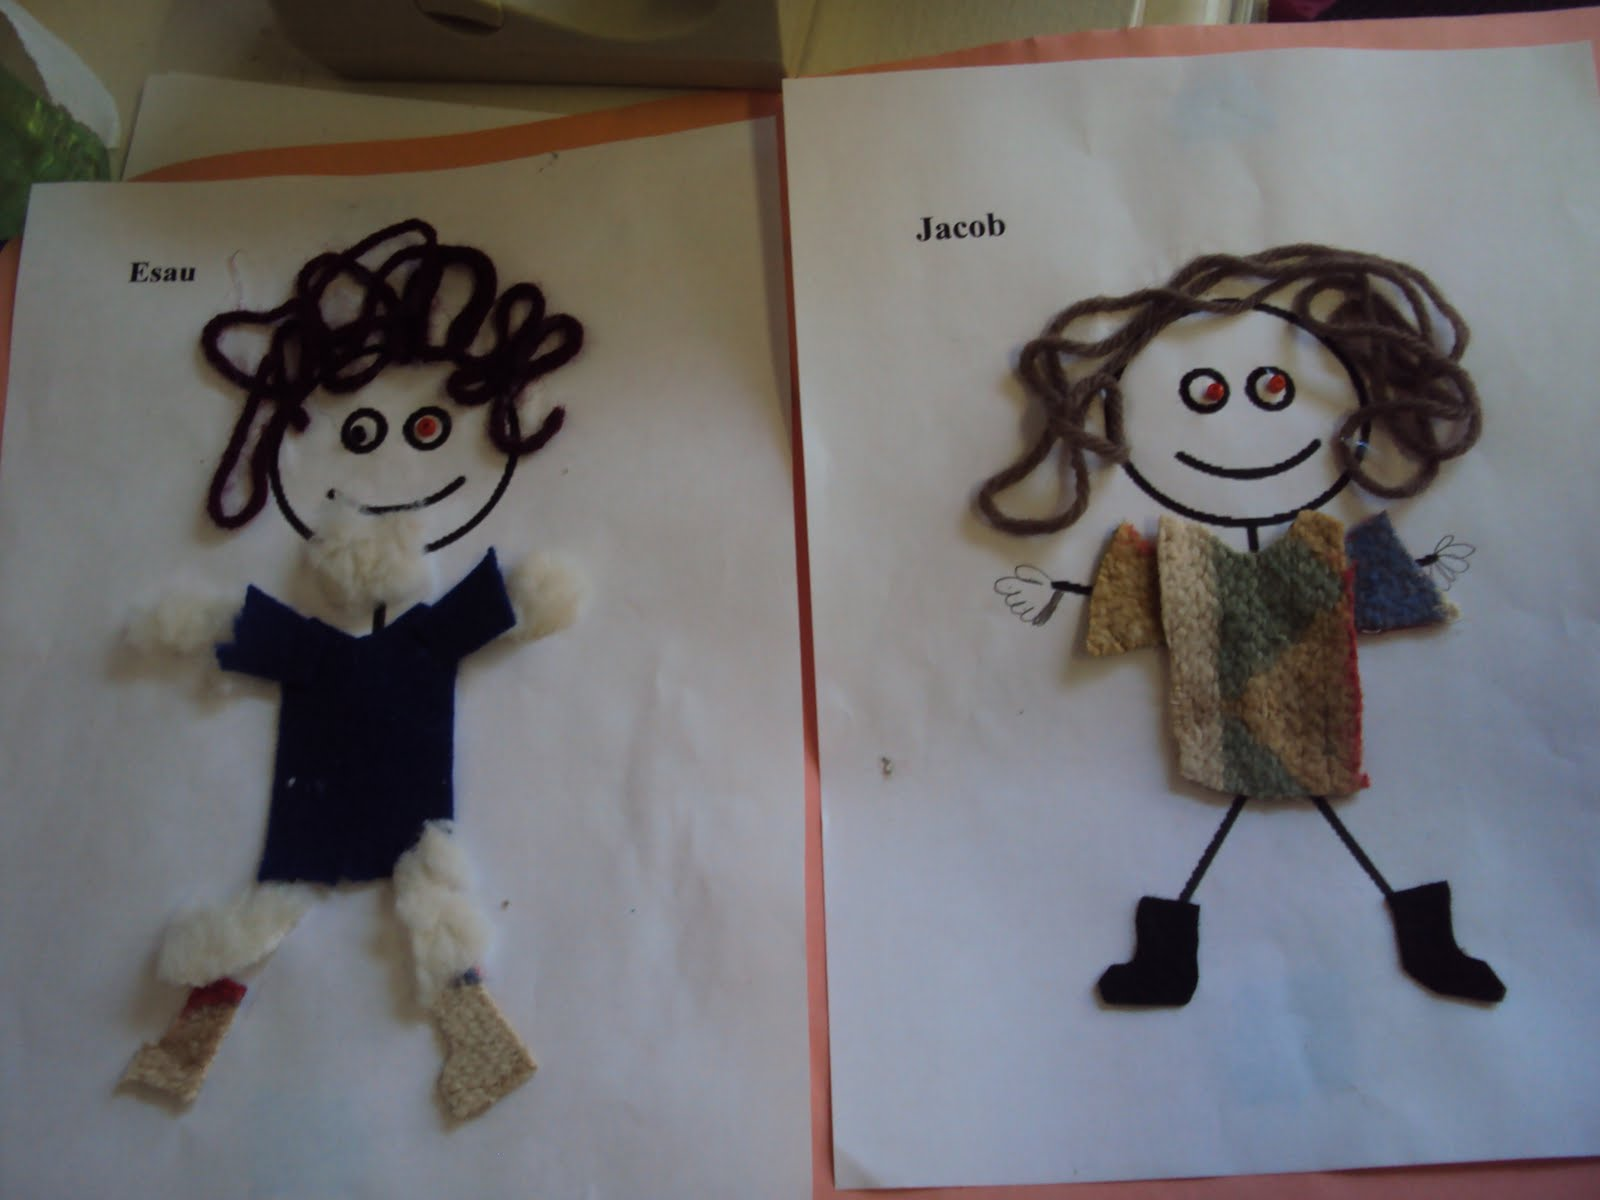 Jacob and esau dolls cows go moo and ducks go quack for Jacob and esau crafts